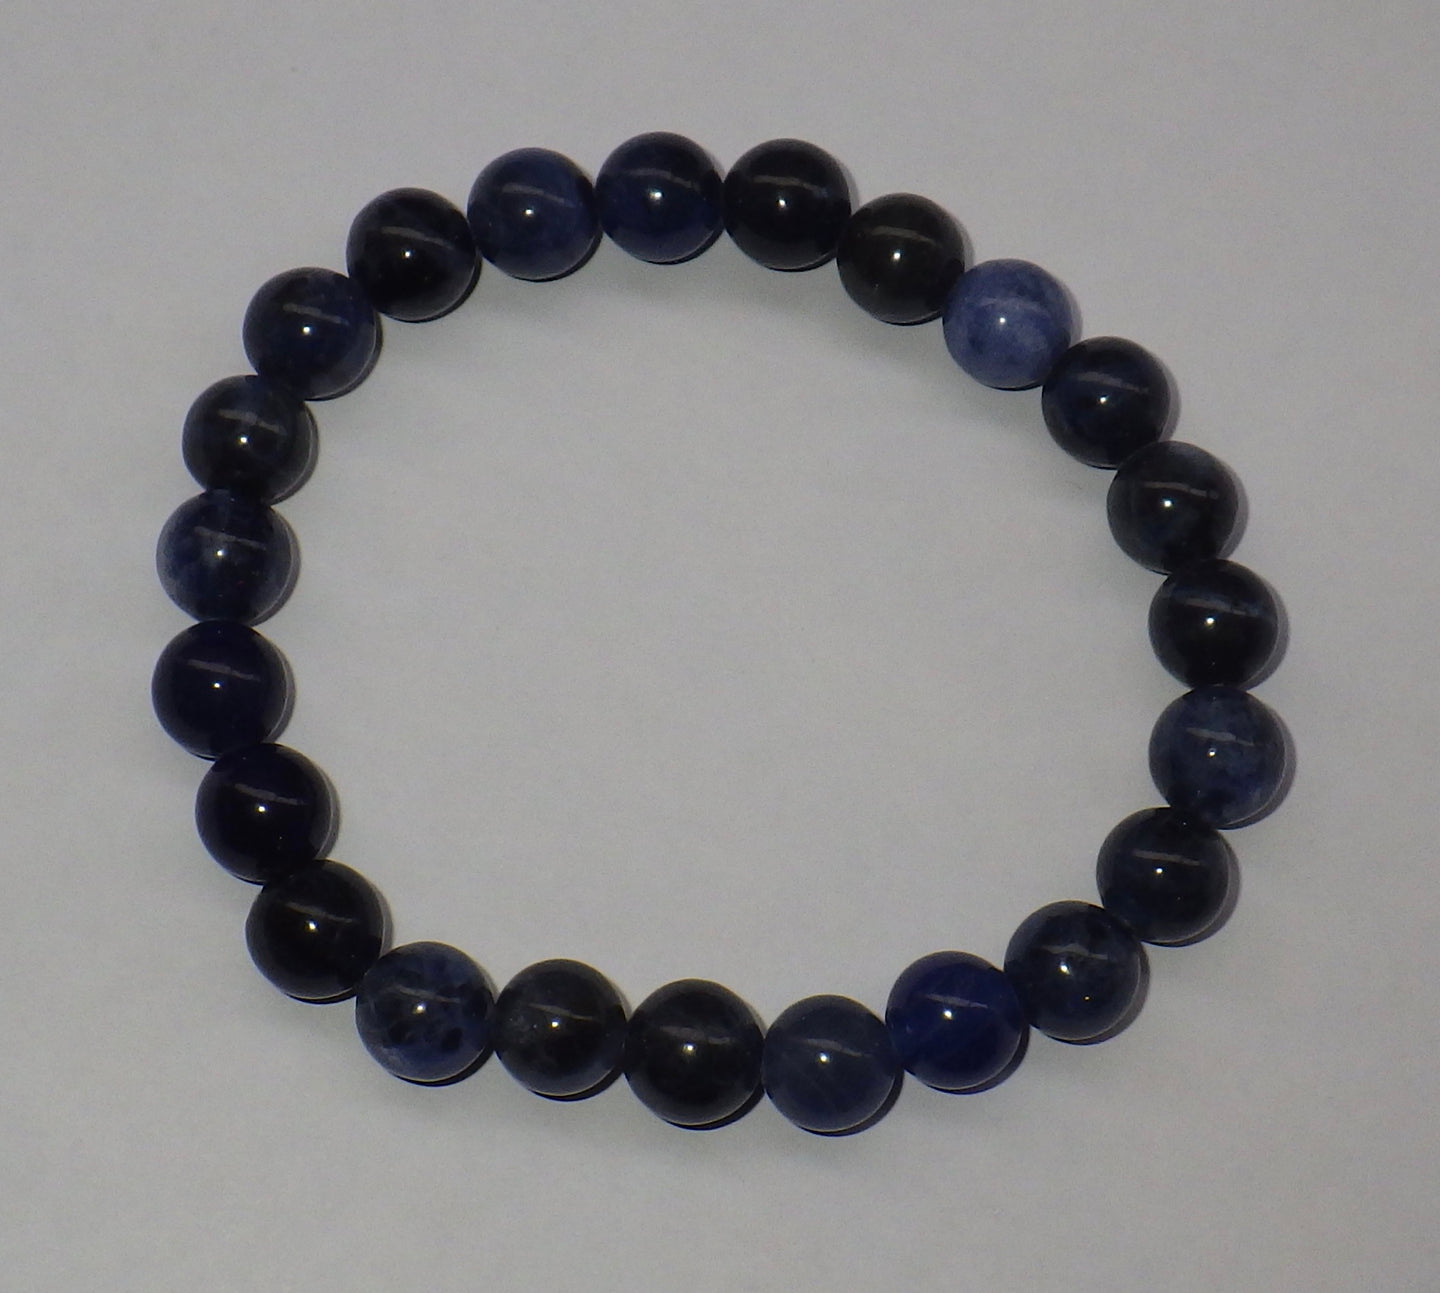 Sodalite Gemstone Bracelet | Earthfound.co.uk